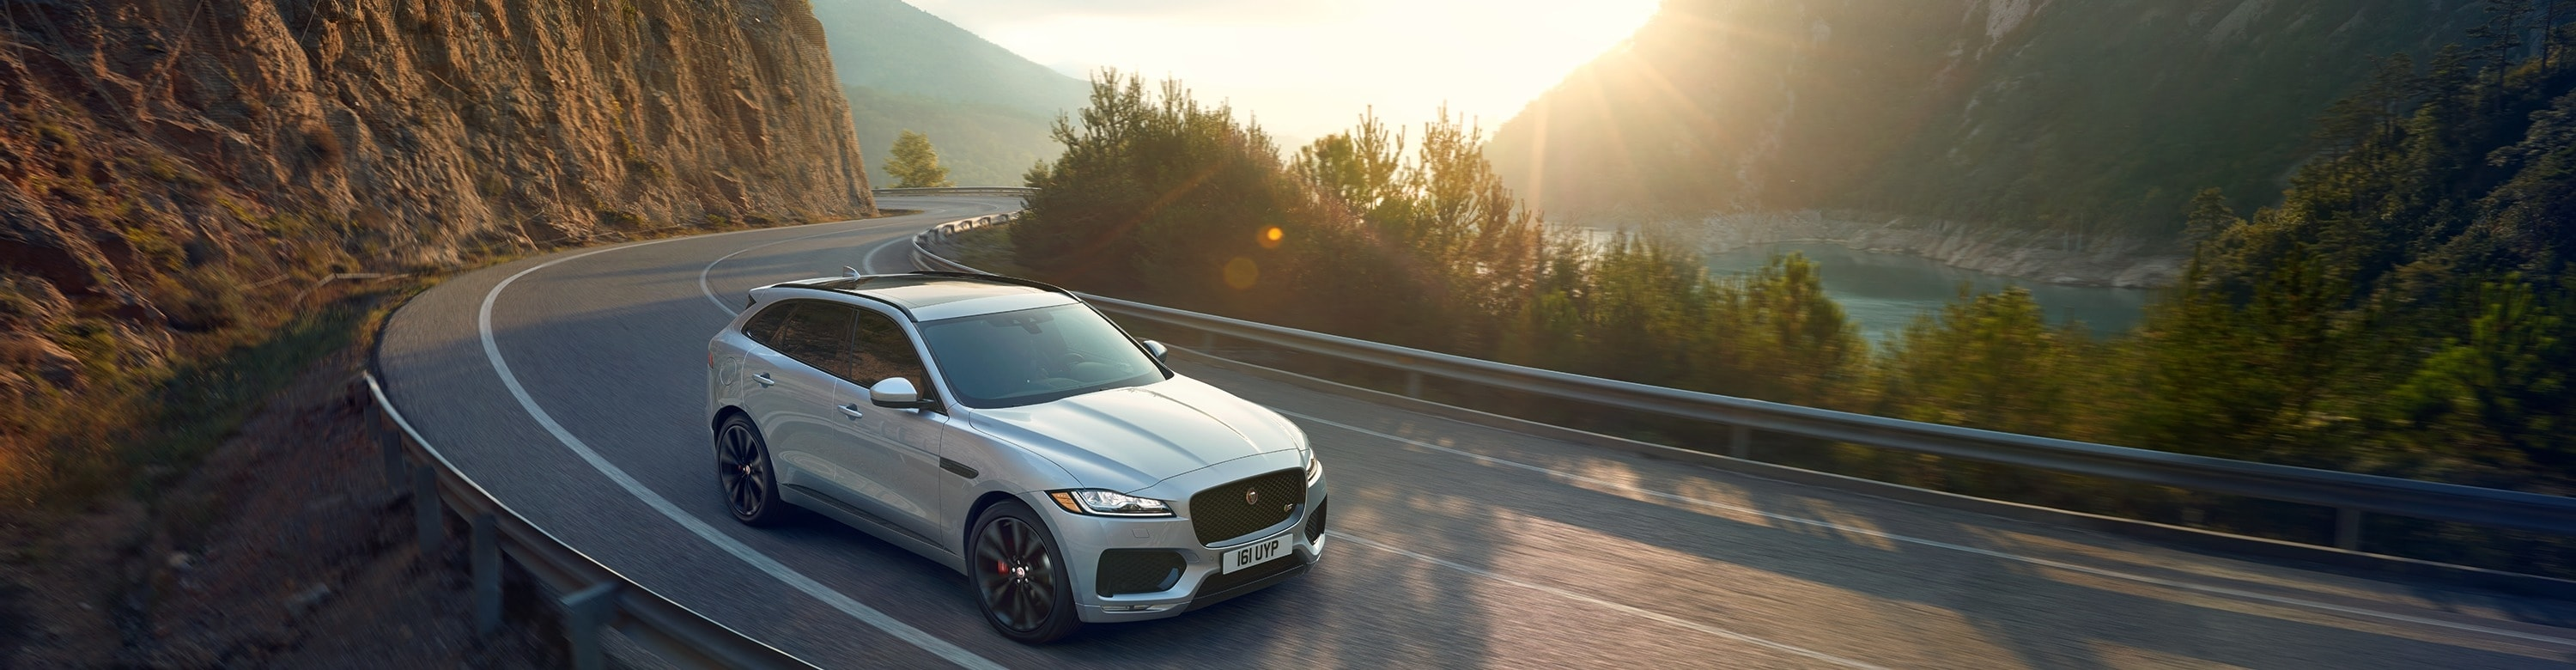 Buy or Lease New Jaguar F PACE near Boston Newton Quincy